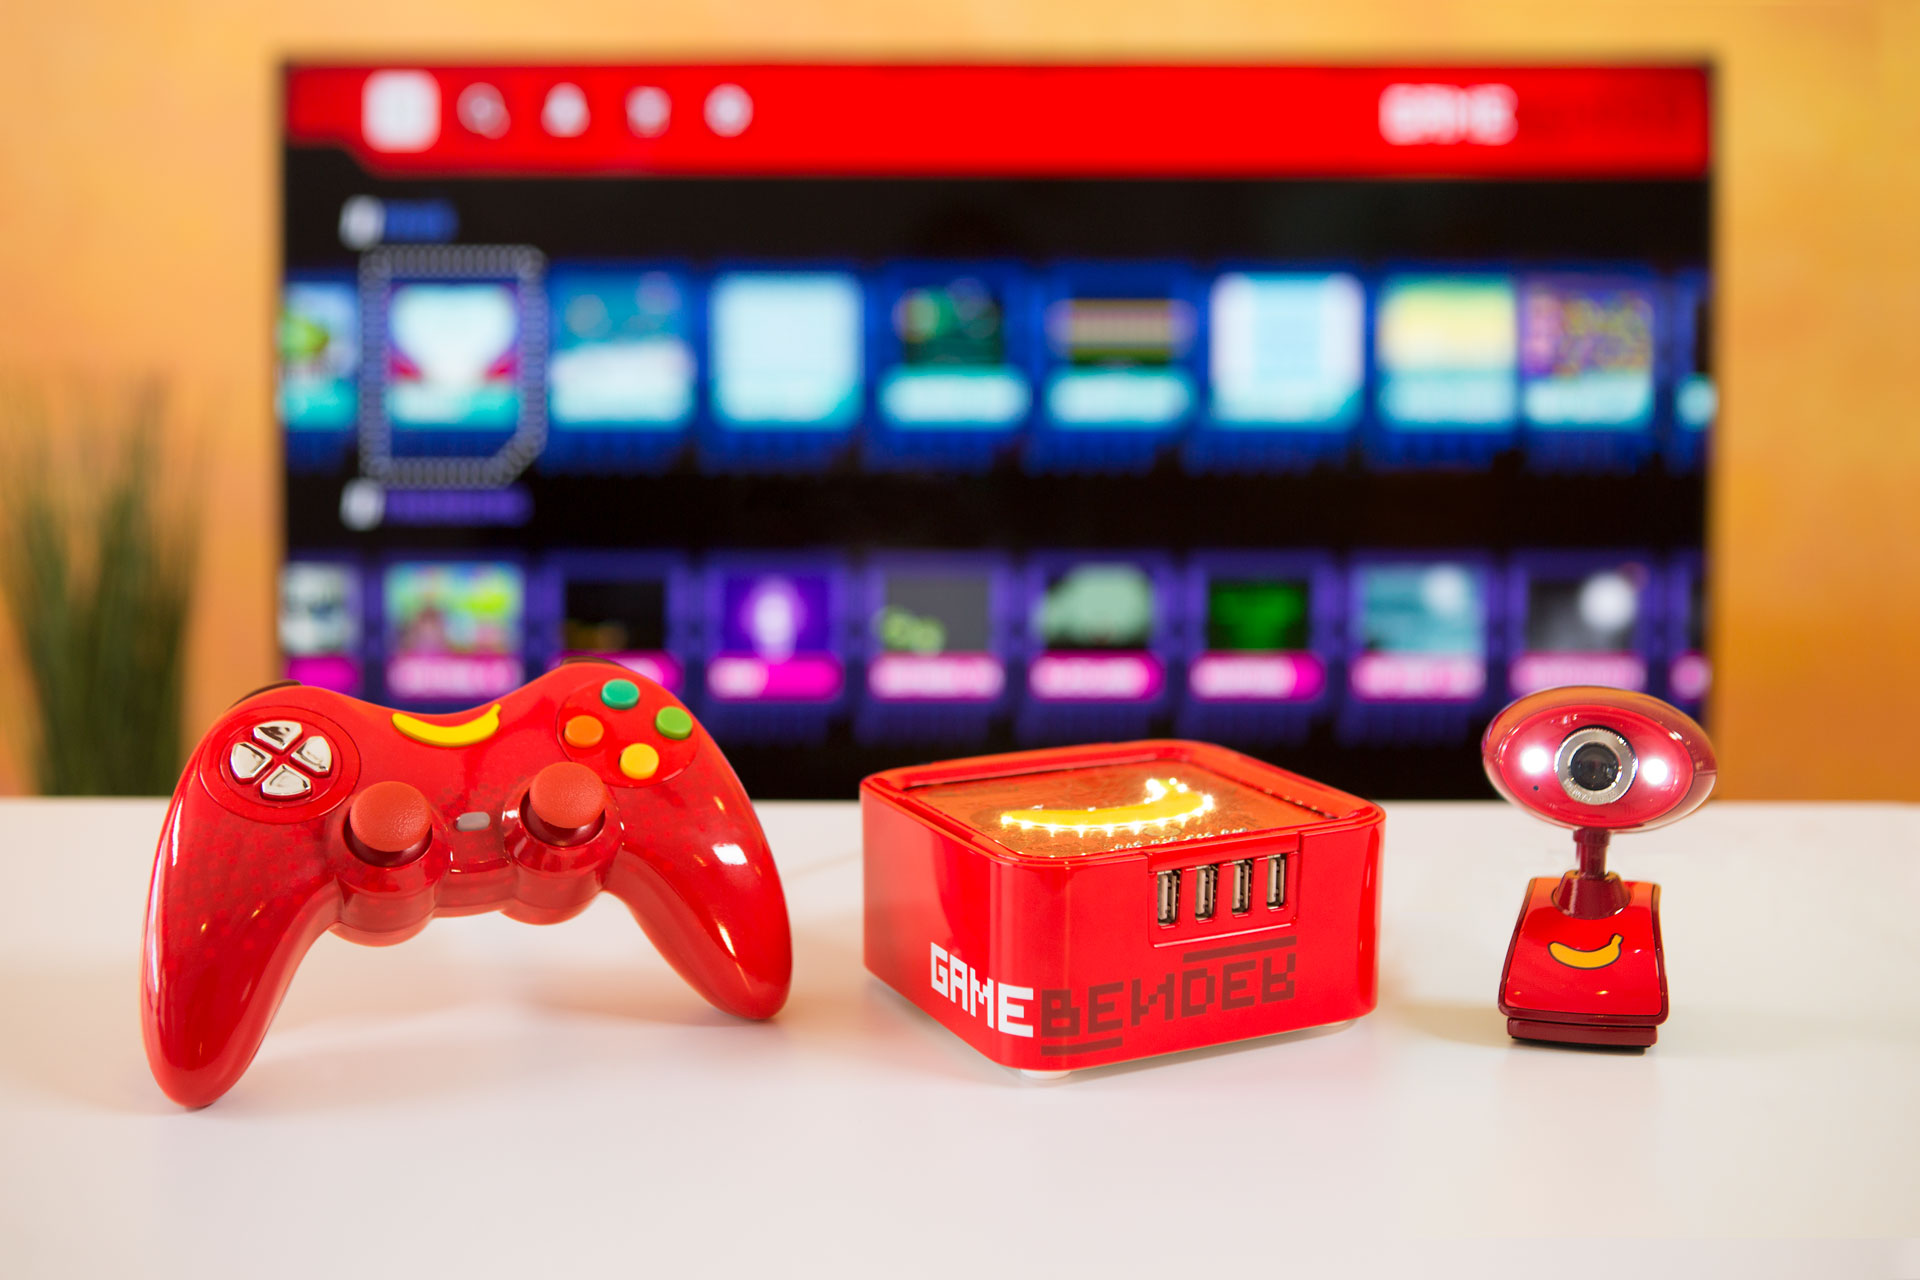 Makey Makey Creators Announce GameBender, A New Game System